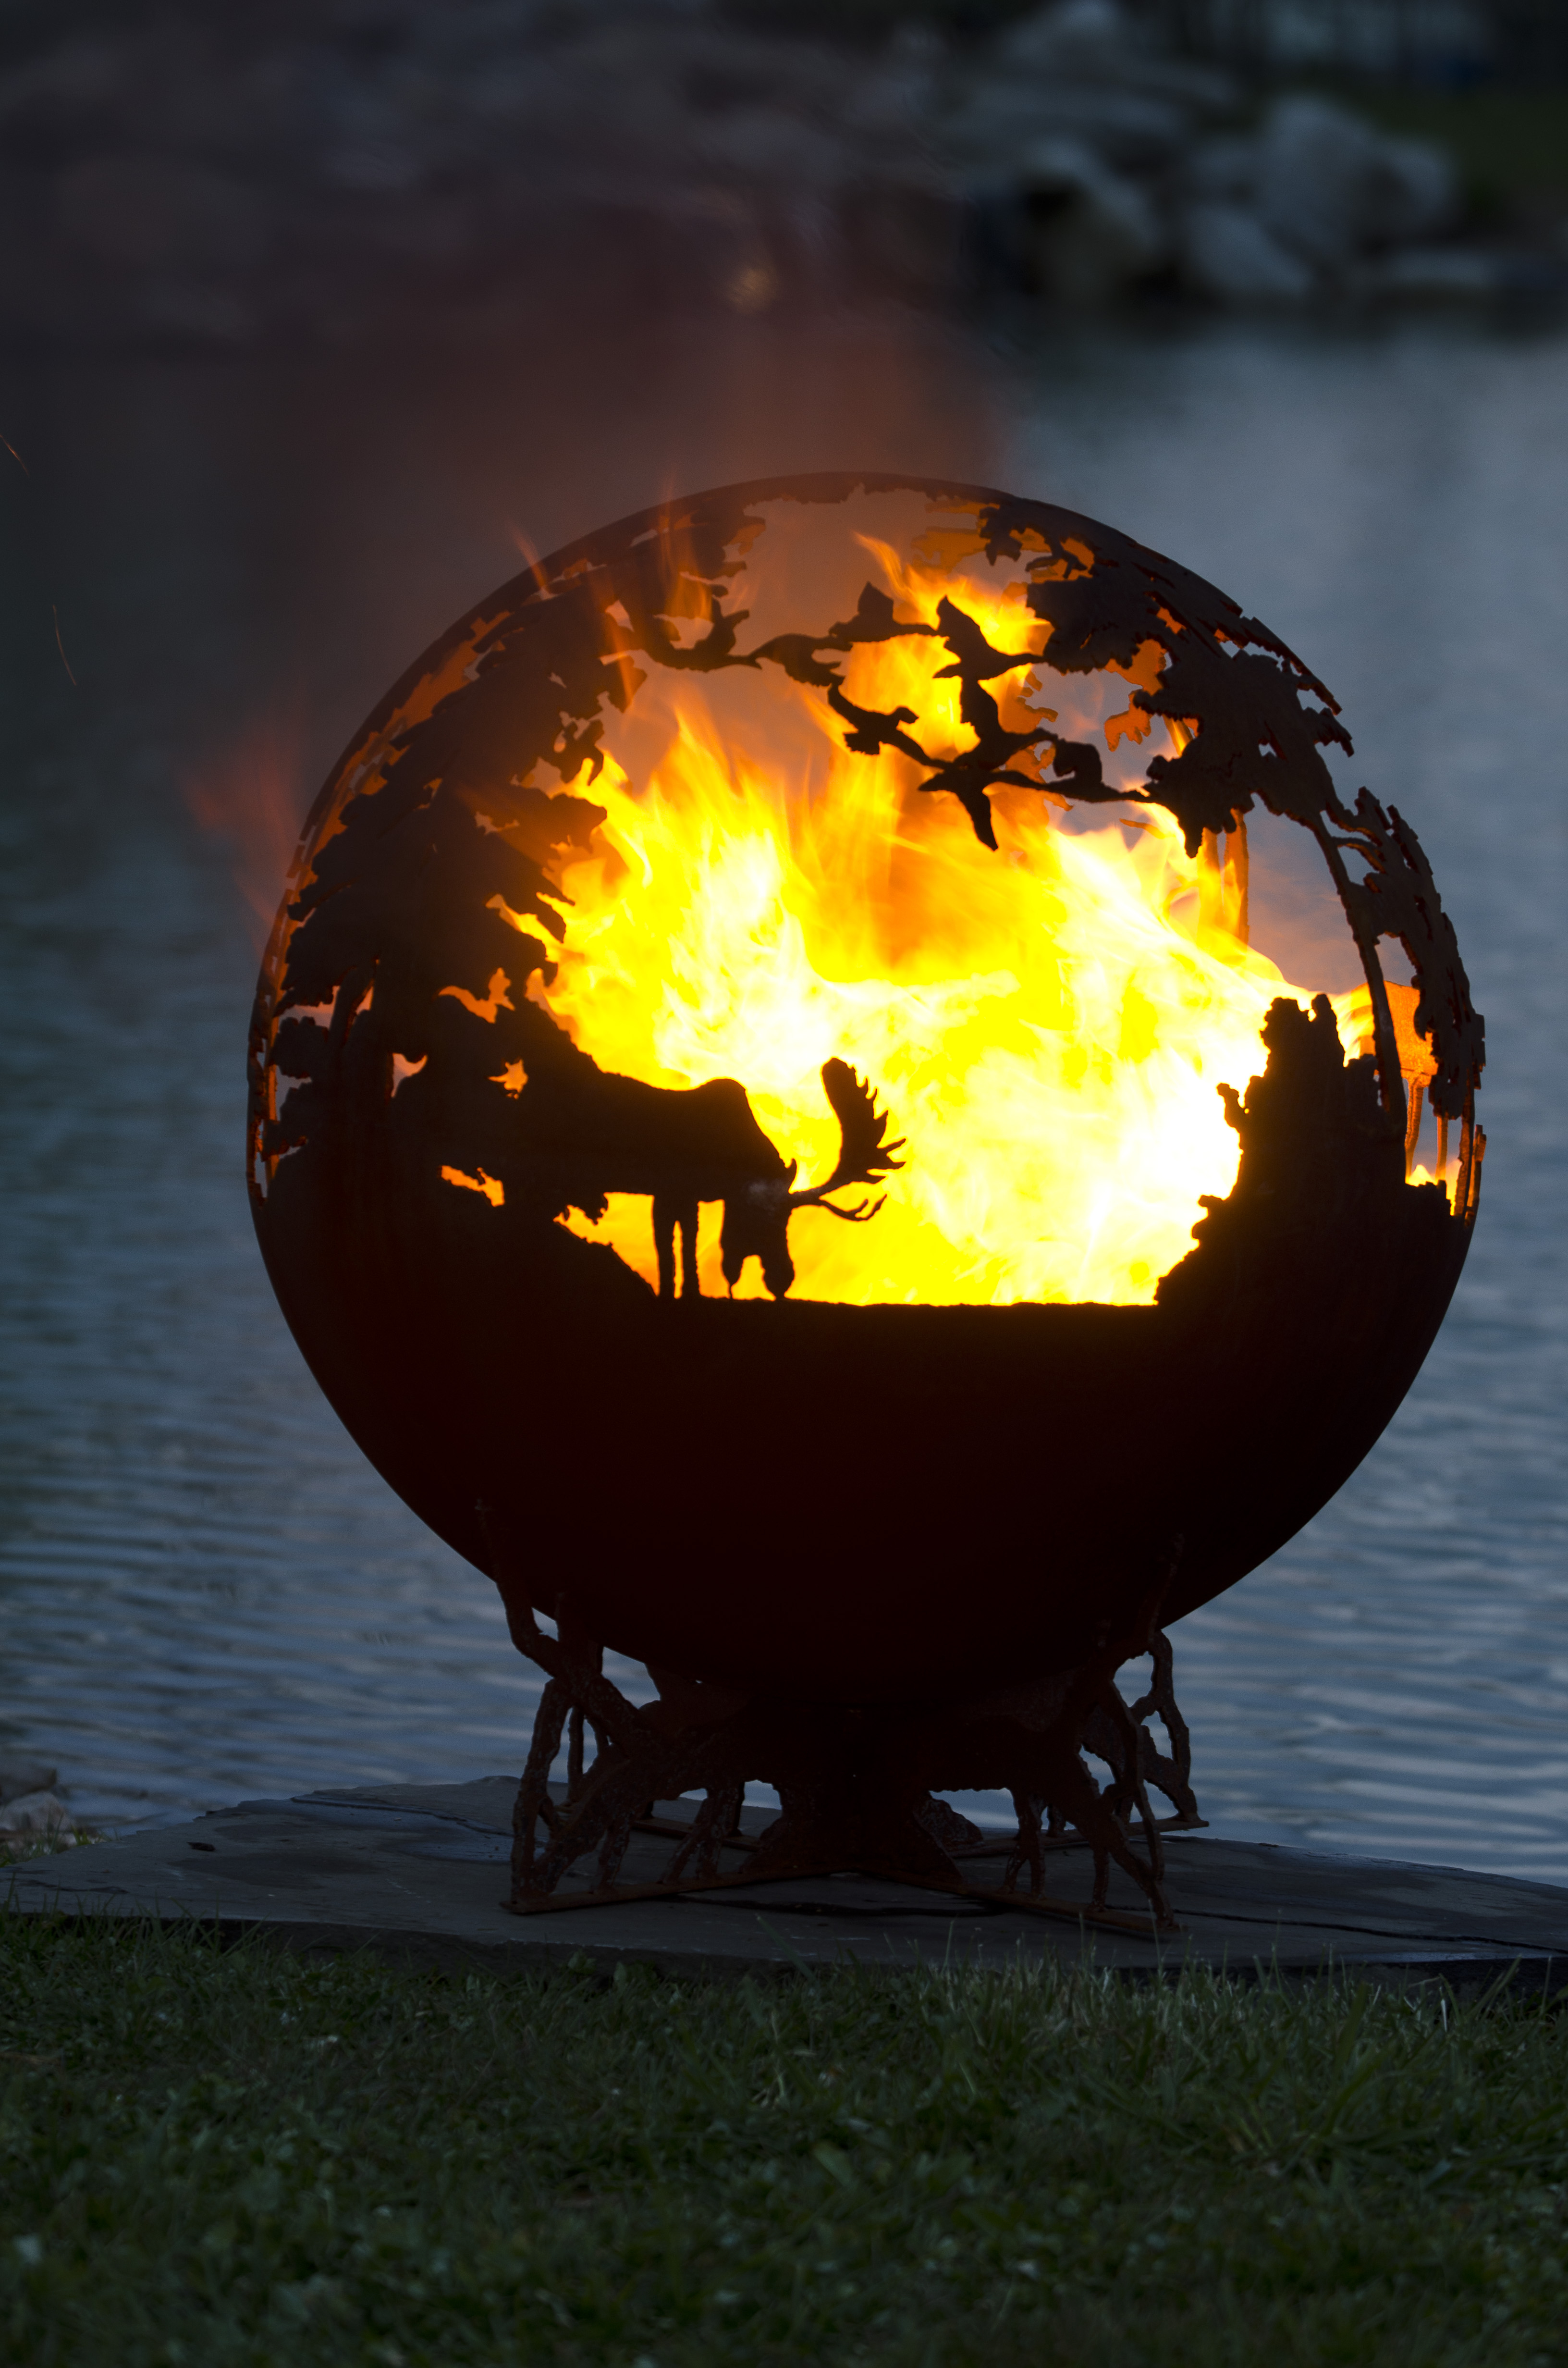 Up North Fire Pit Sphere The Fire Pit Gallery regarding dimensions 3264 X 4928